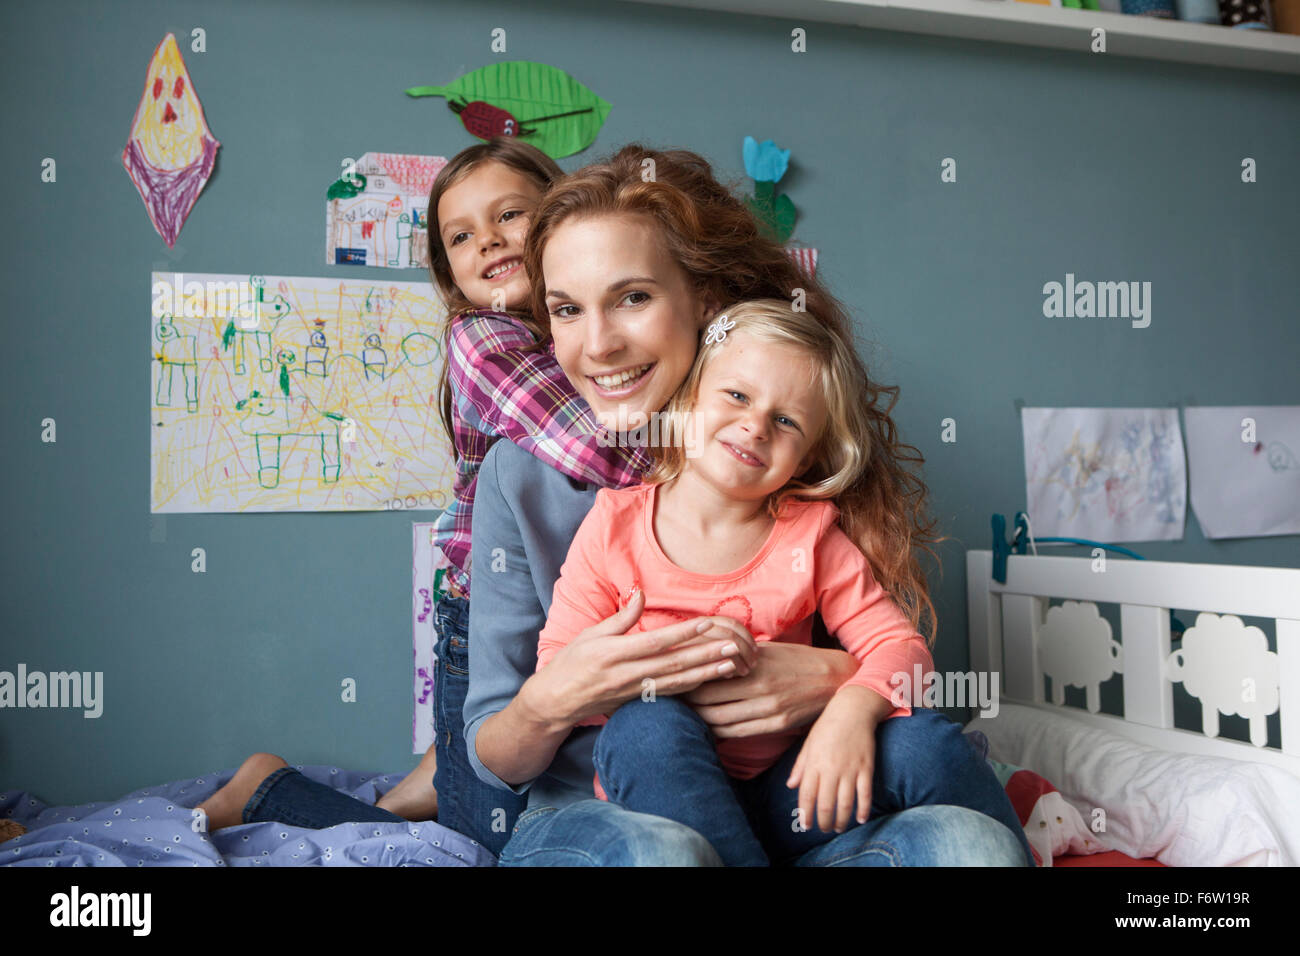 Portrait of woman with her little daughters in children's room - Stock Image